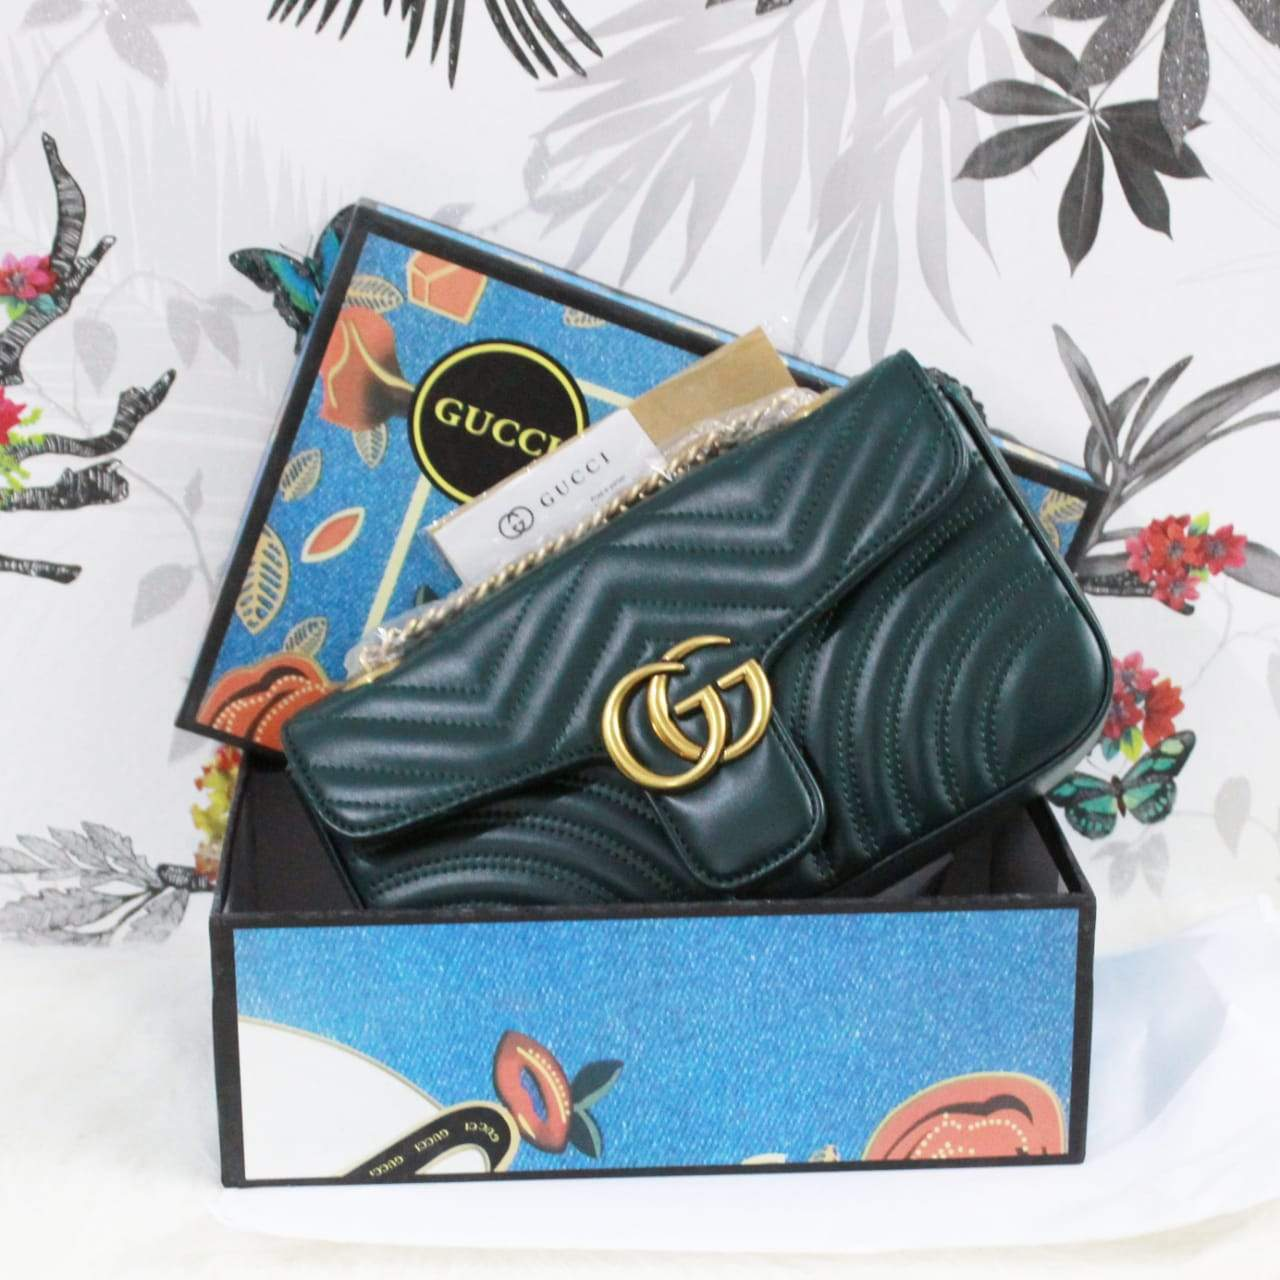 Gucci Dark Green Colour Sling Bag 1st copy 1732.greennew